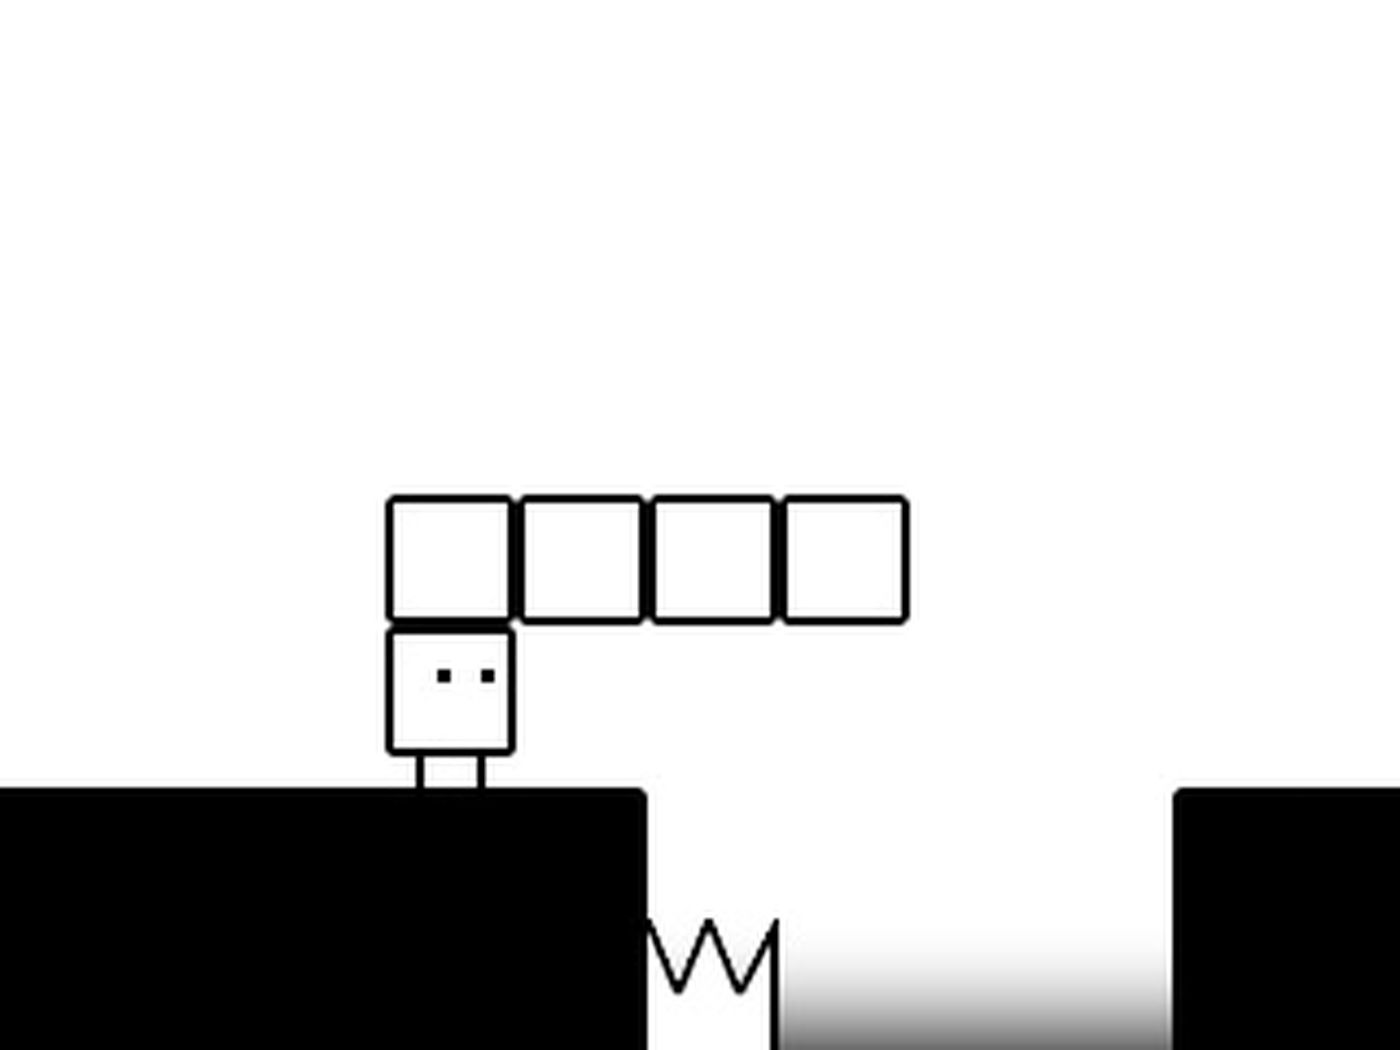 Boxboy Is An Adorable Nintendo 3ds Puzzle Game About Boxes